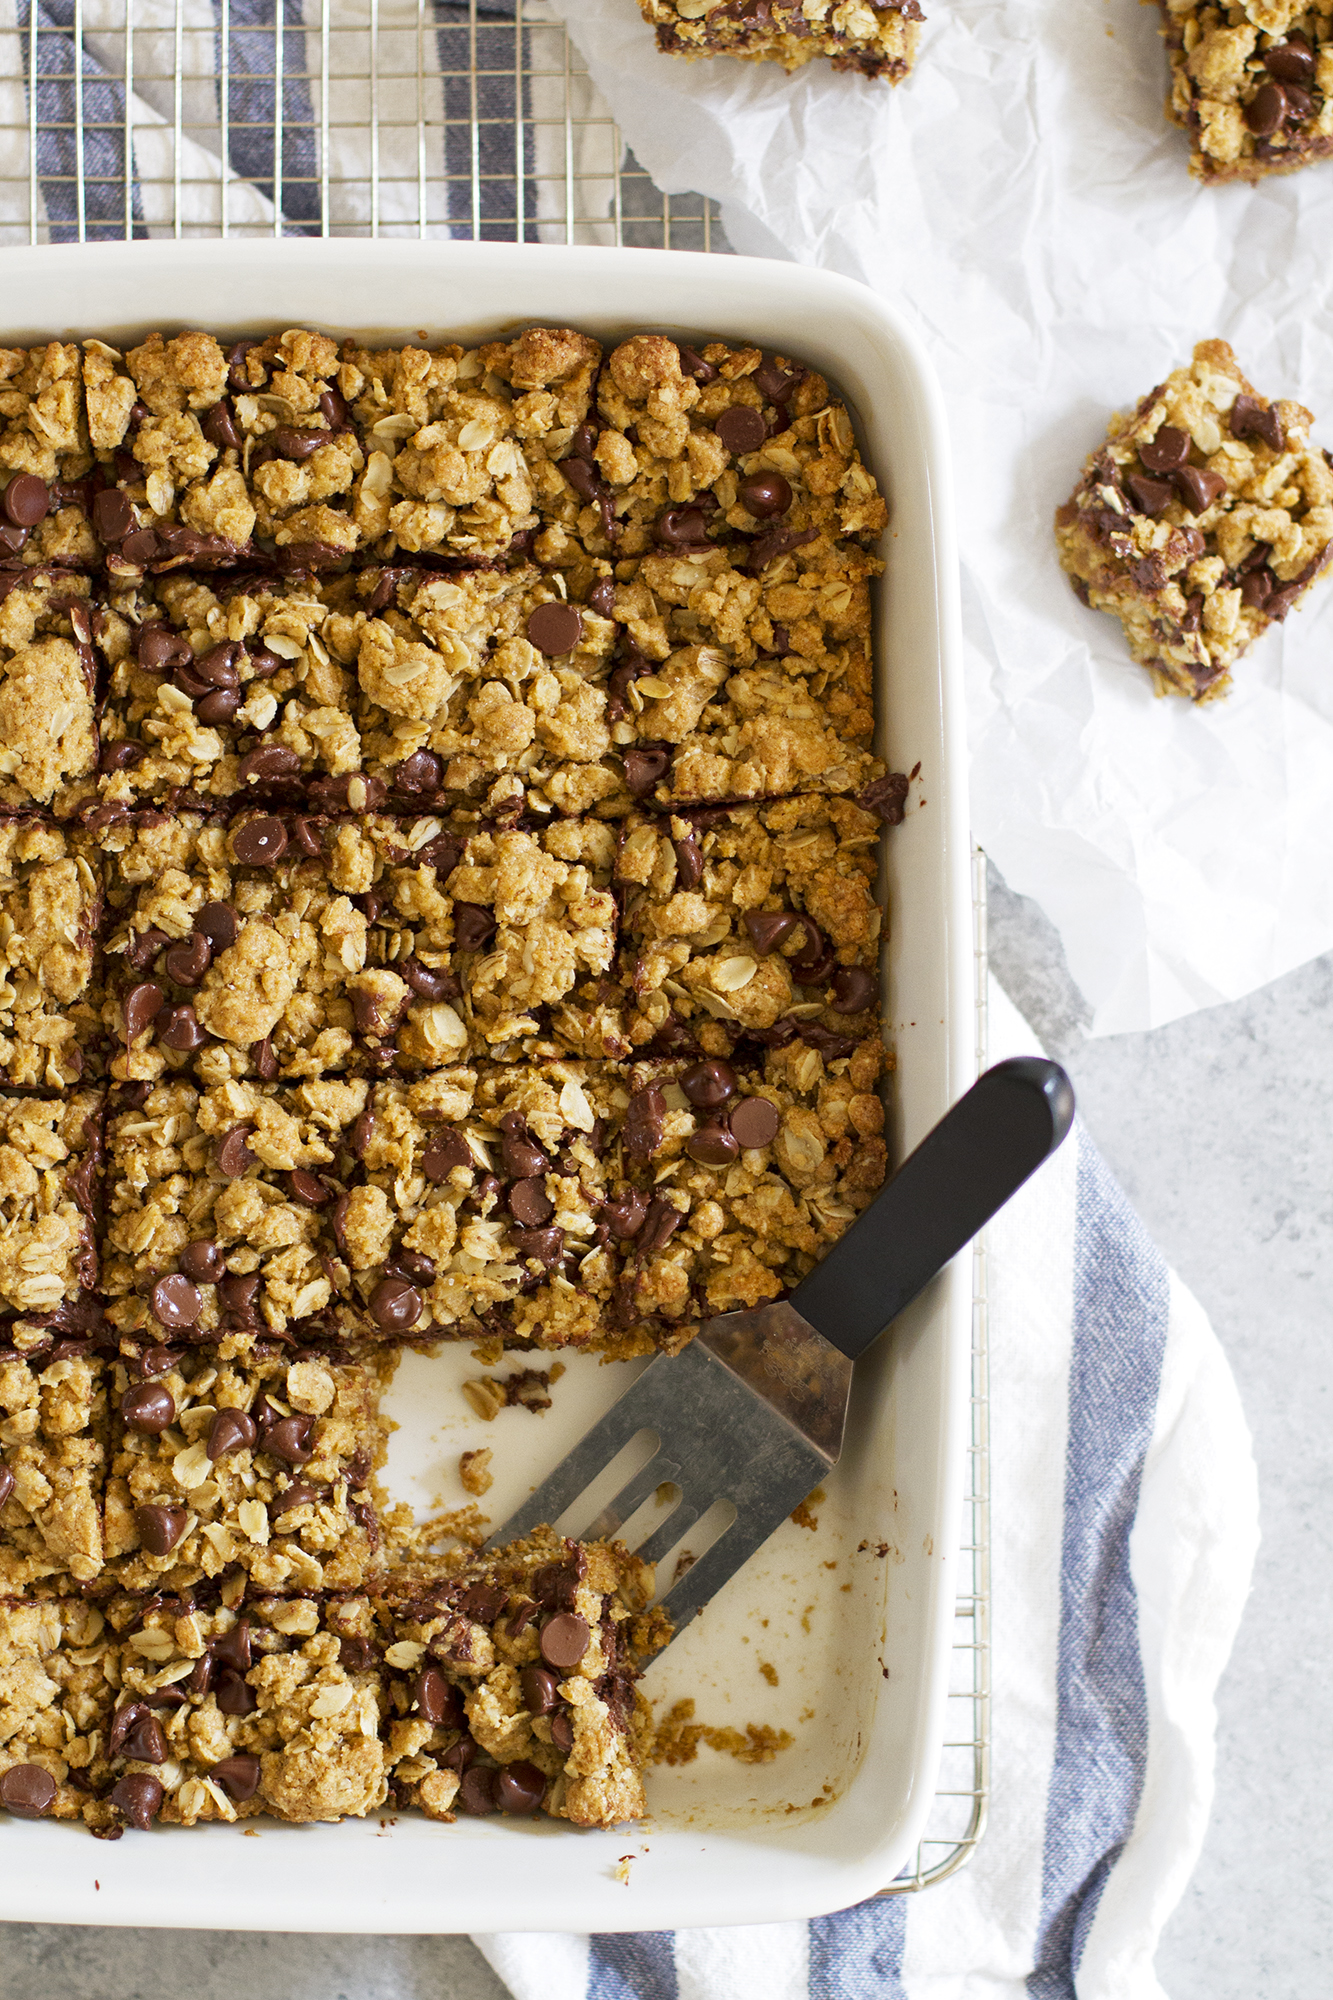 Whole Wheat Oatmeal Chocolate Chip Cookie Bars | girlversusdough.com @girlversusdough